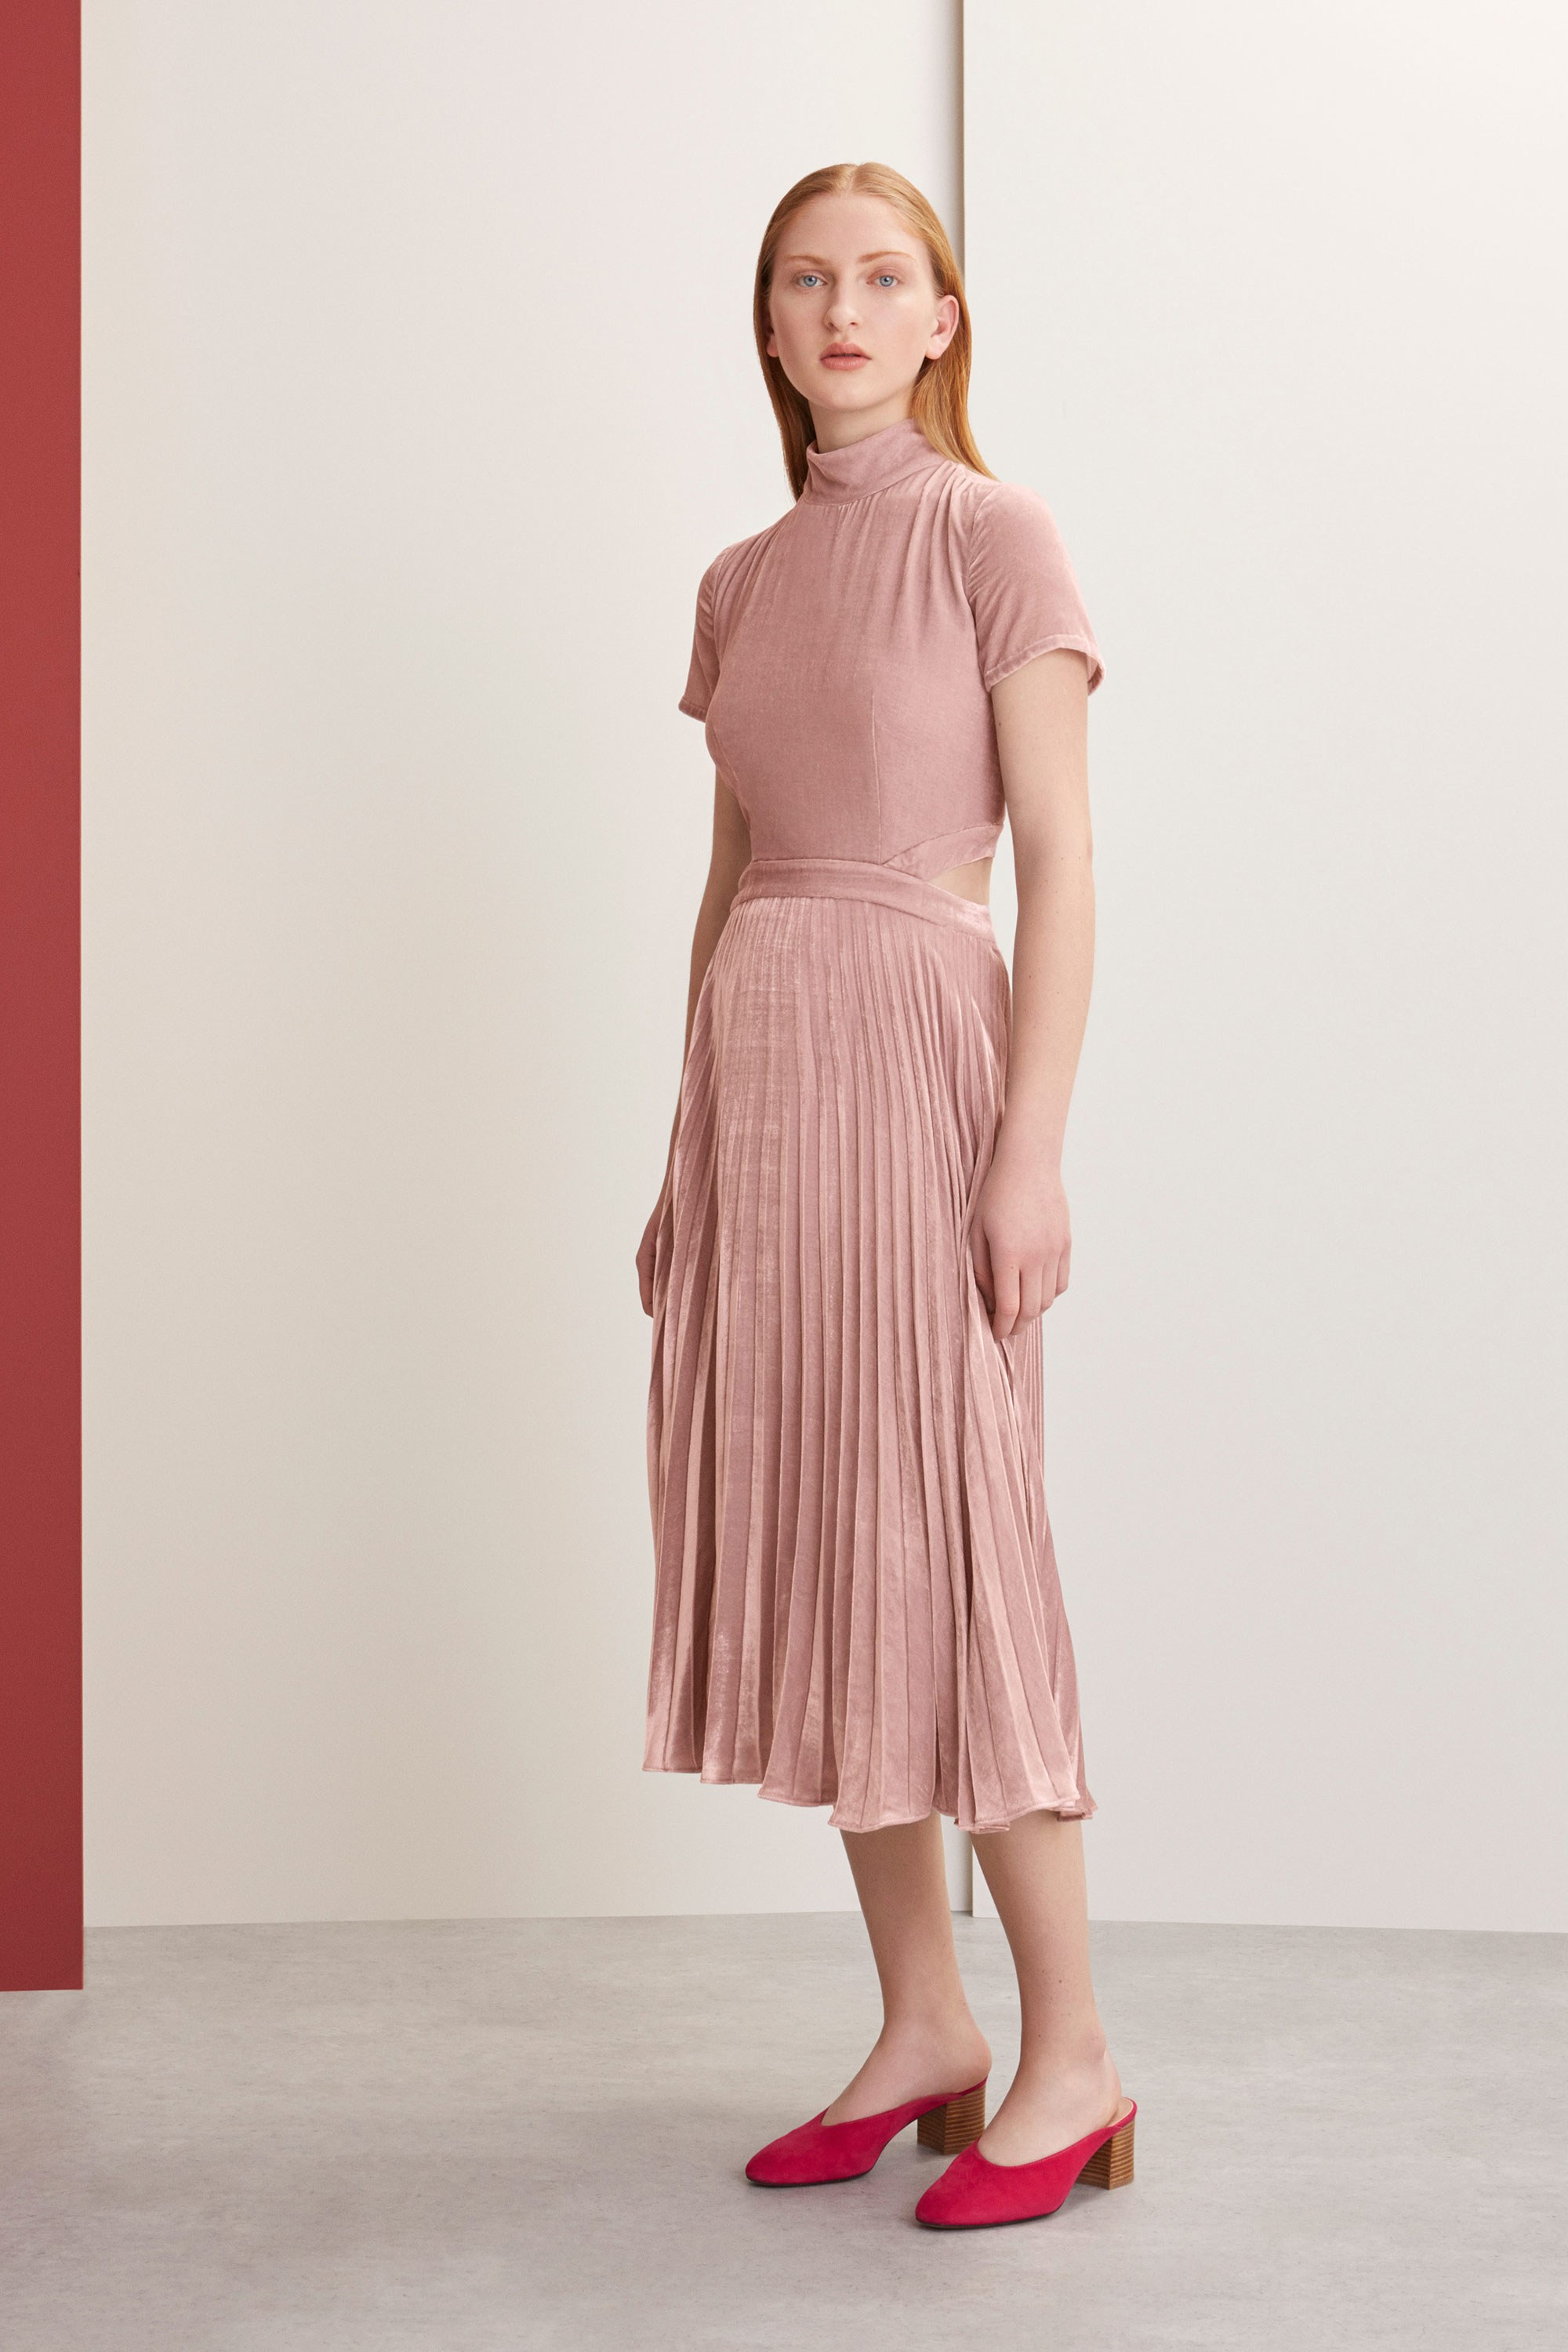 21-whistles-pre-fall-17